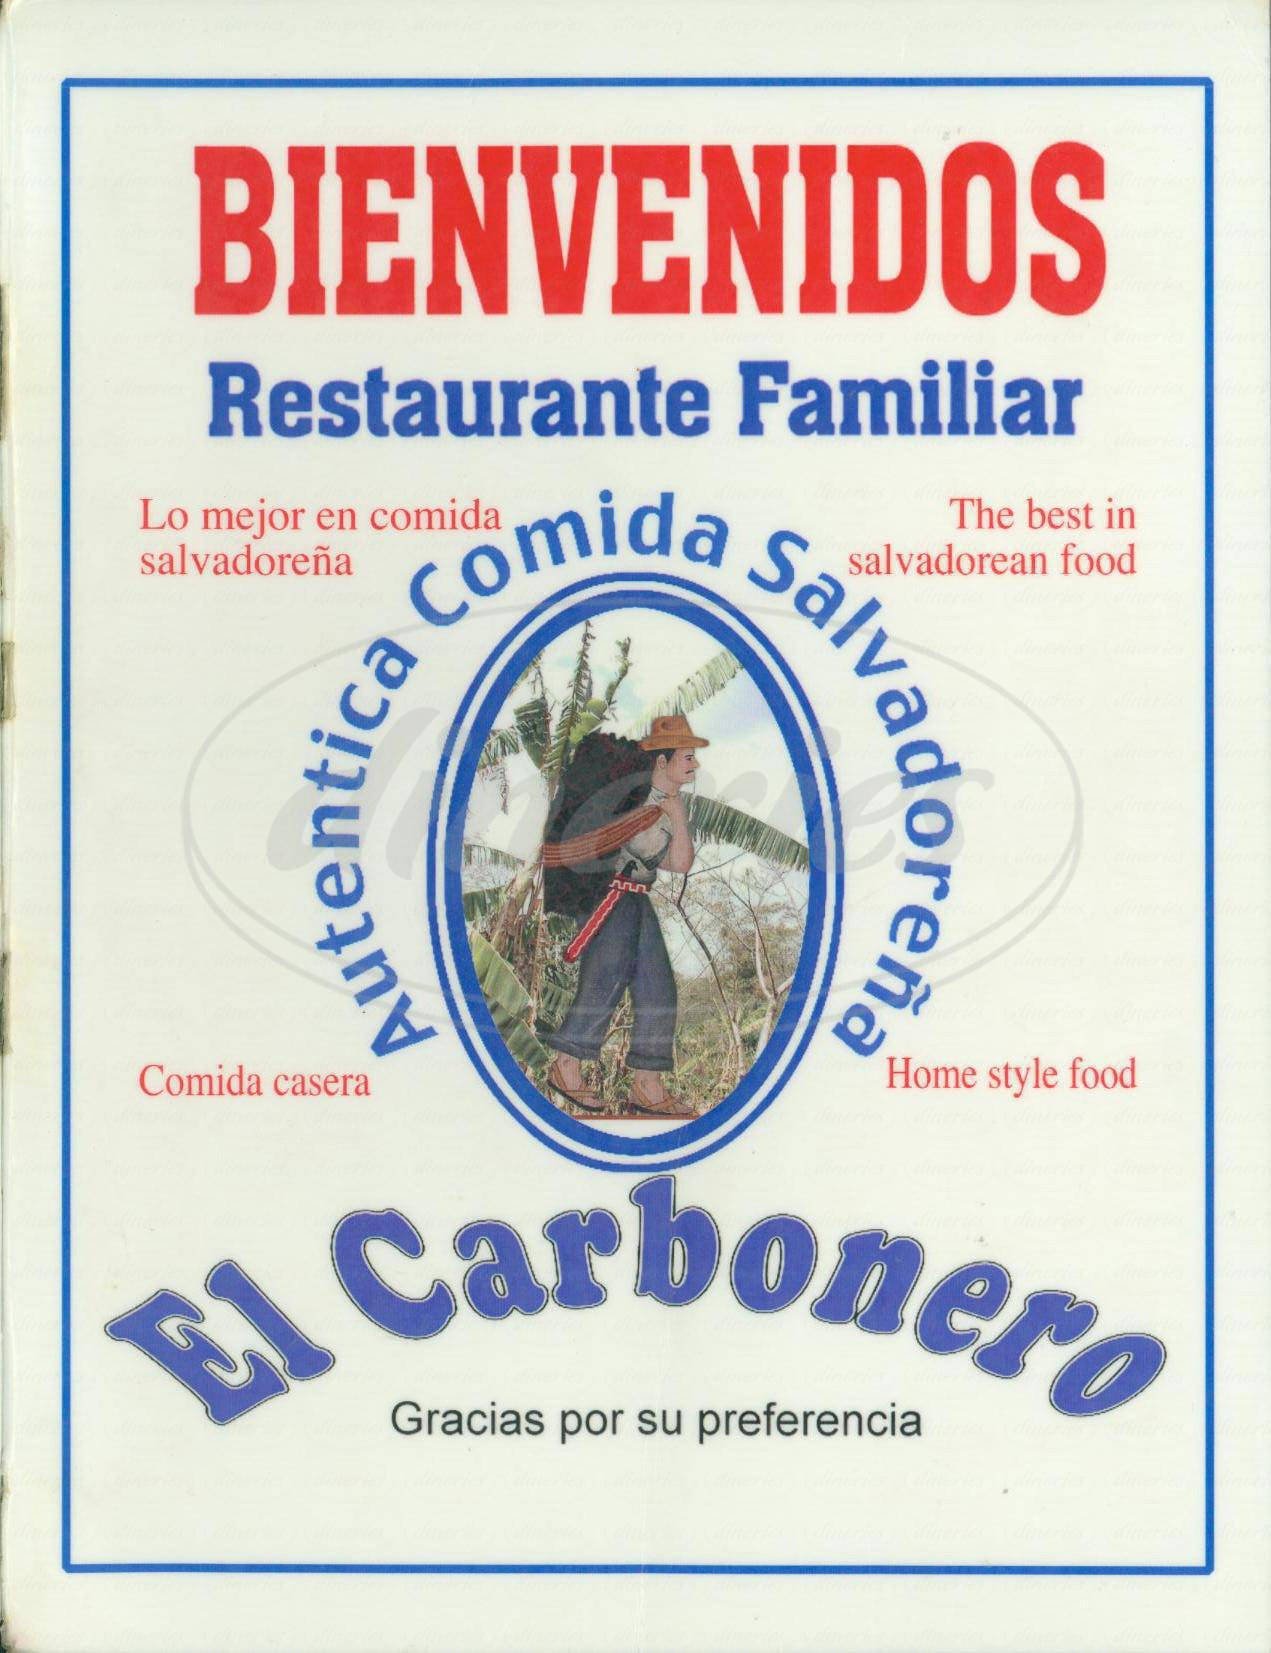 menu for El Carbonero Restaurant